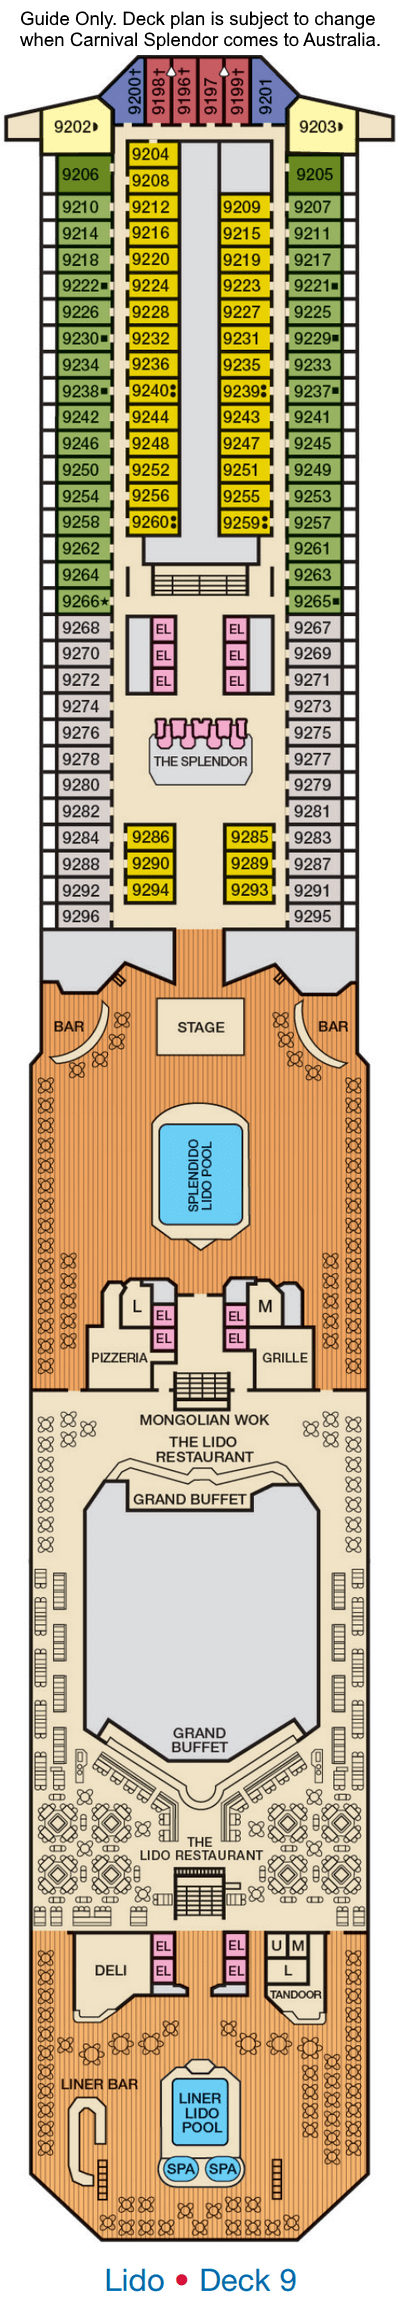 Carnival Splendor Deck 9 layout